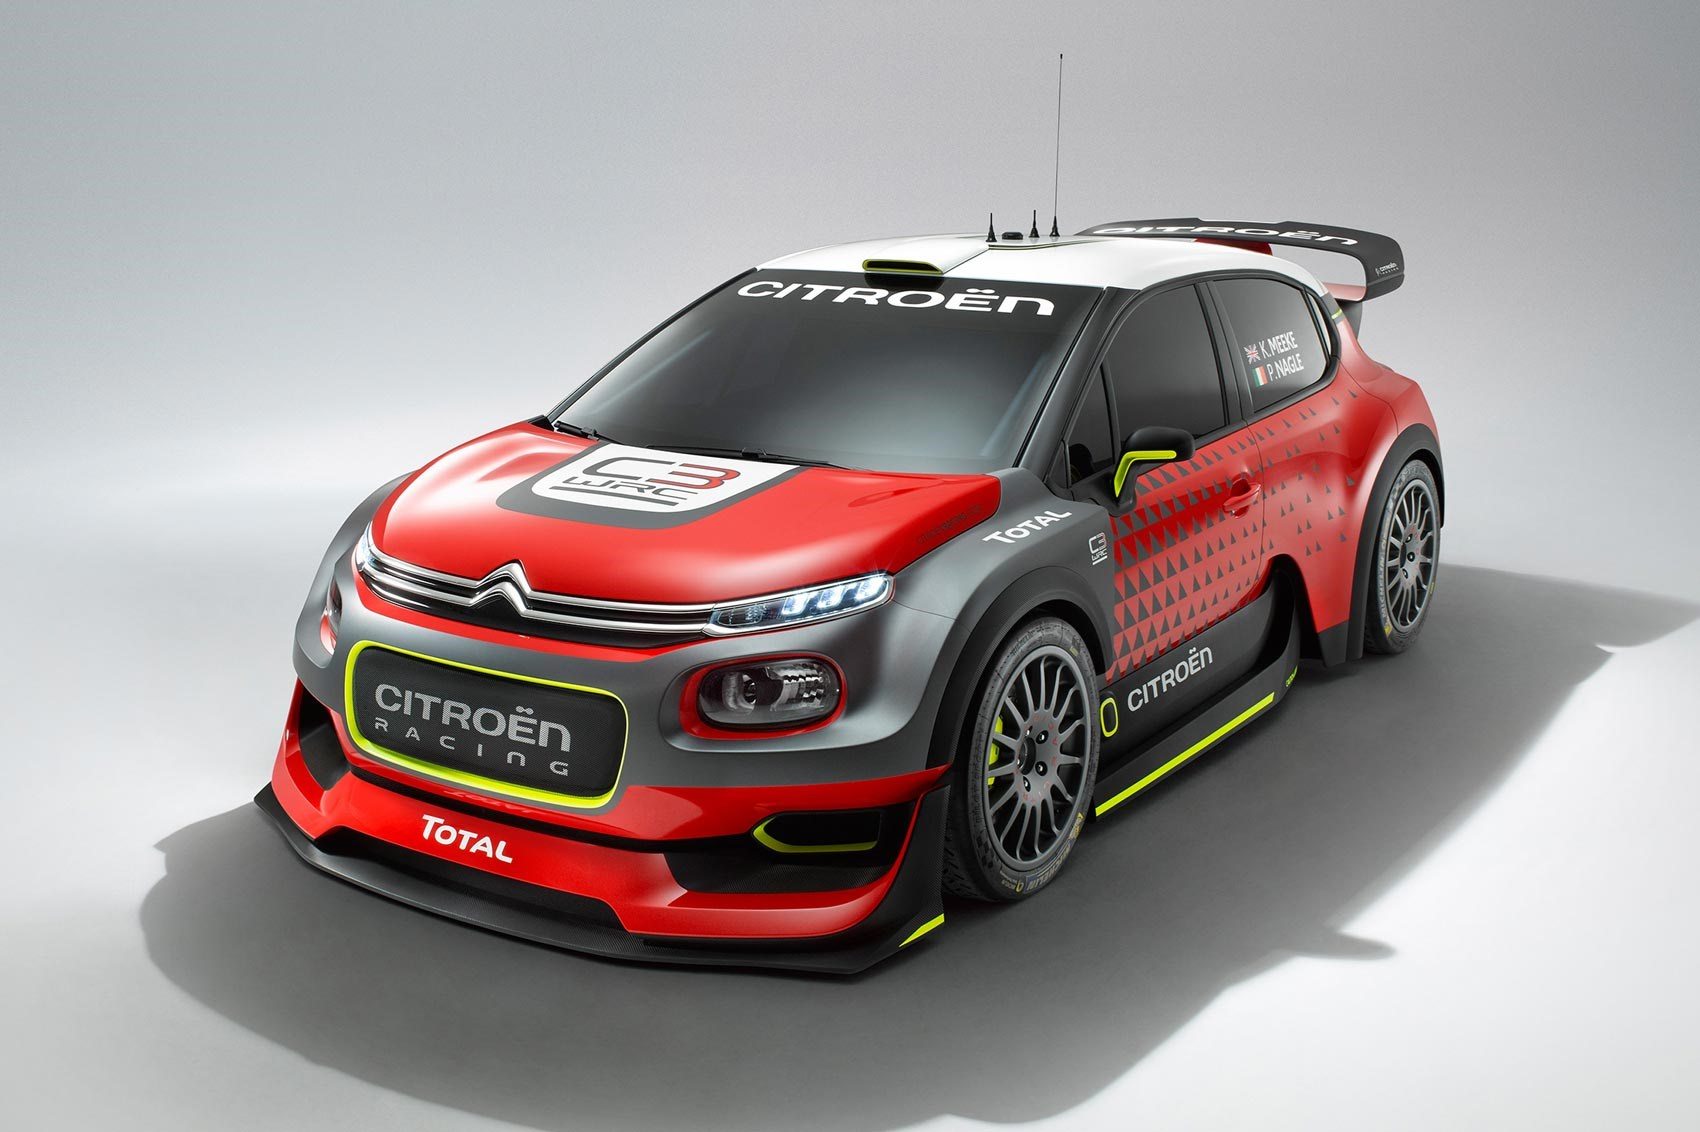 New 2017 Citroen C3 WRC concept unveiled by CAR Magazine